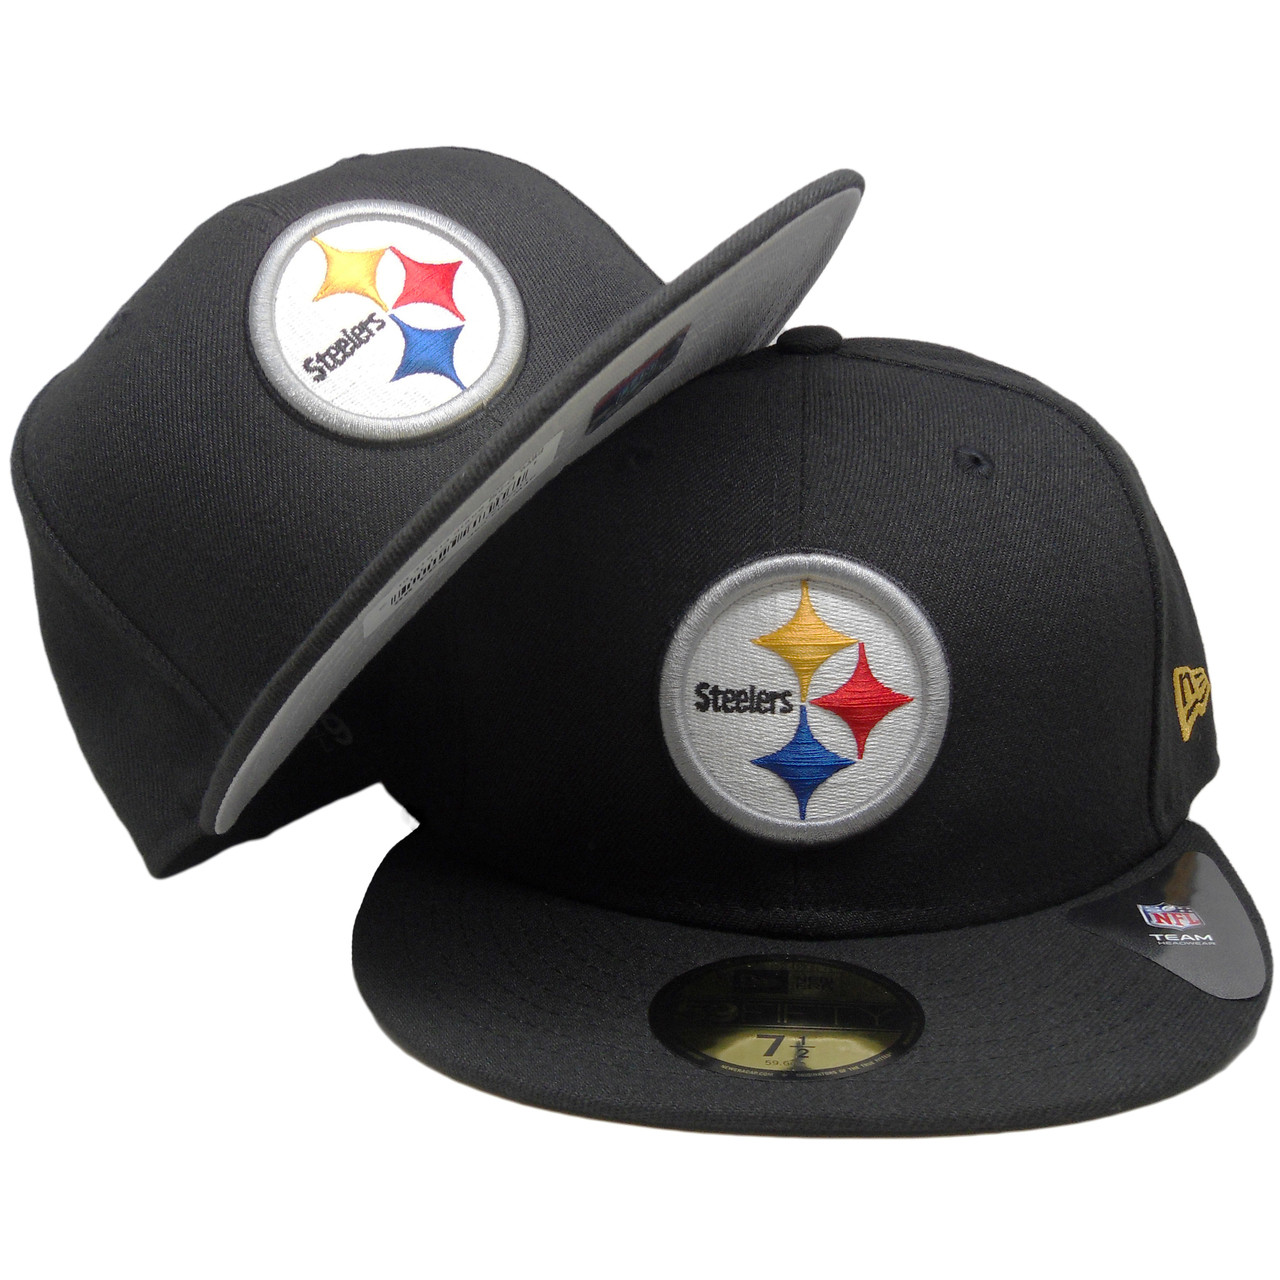 new style bc5cb 86313 Pittsburgh Steelers New Era Classic Fitted Hat - Black, Yellow, Red, Blue -  ECapsUnlimited.com